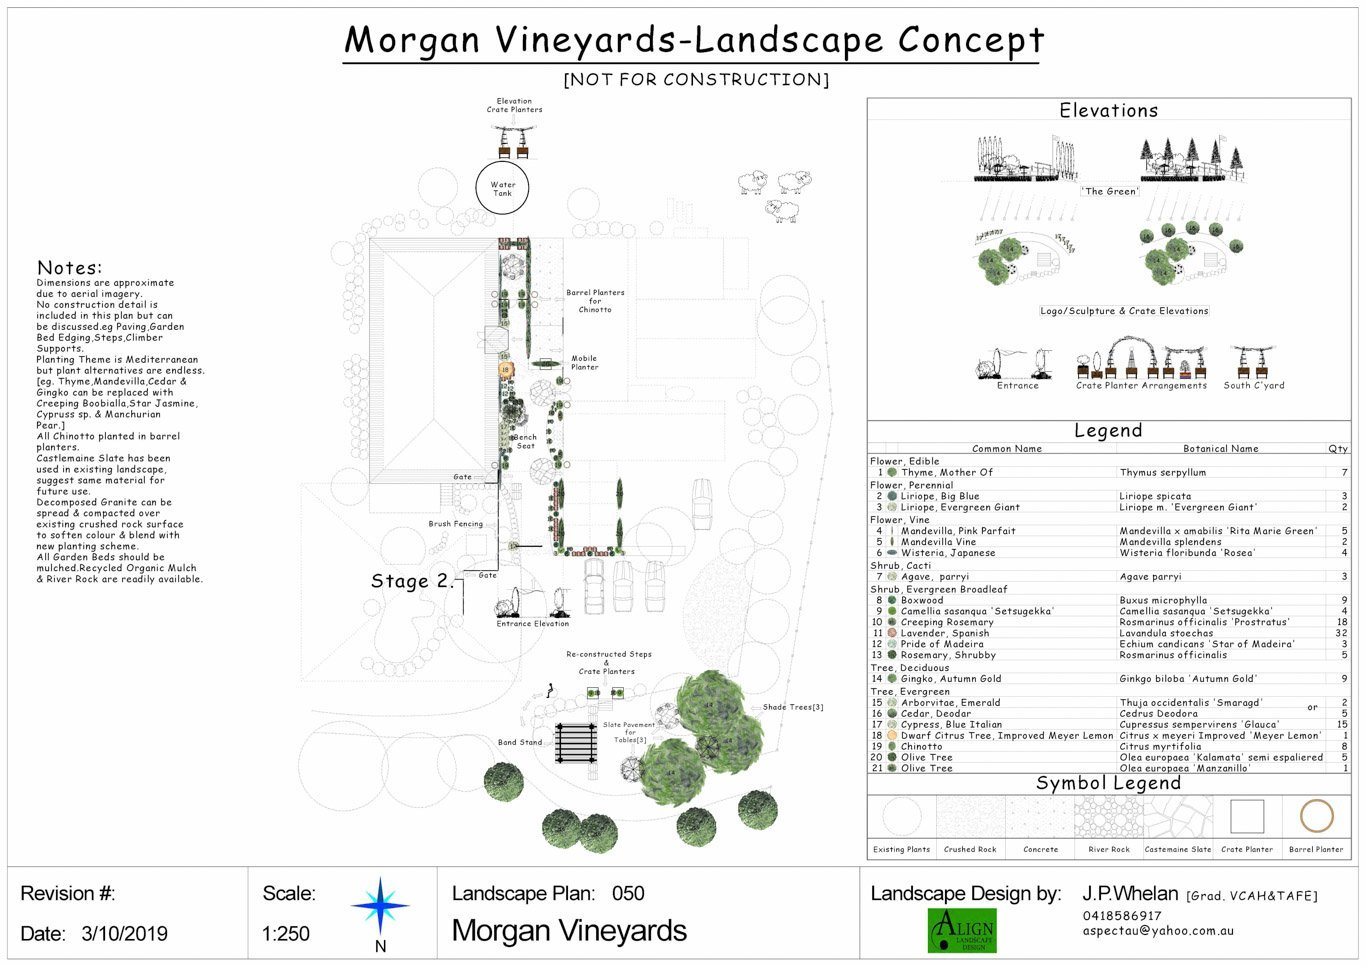 Mount Evelyn Landscape Designer John Whelan Plans Morgan Vineyards